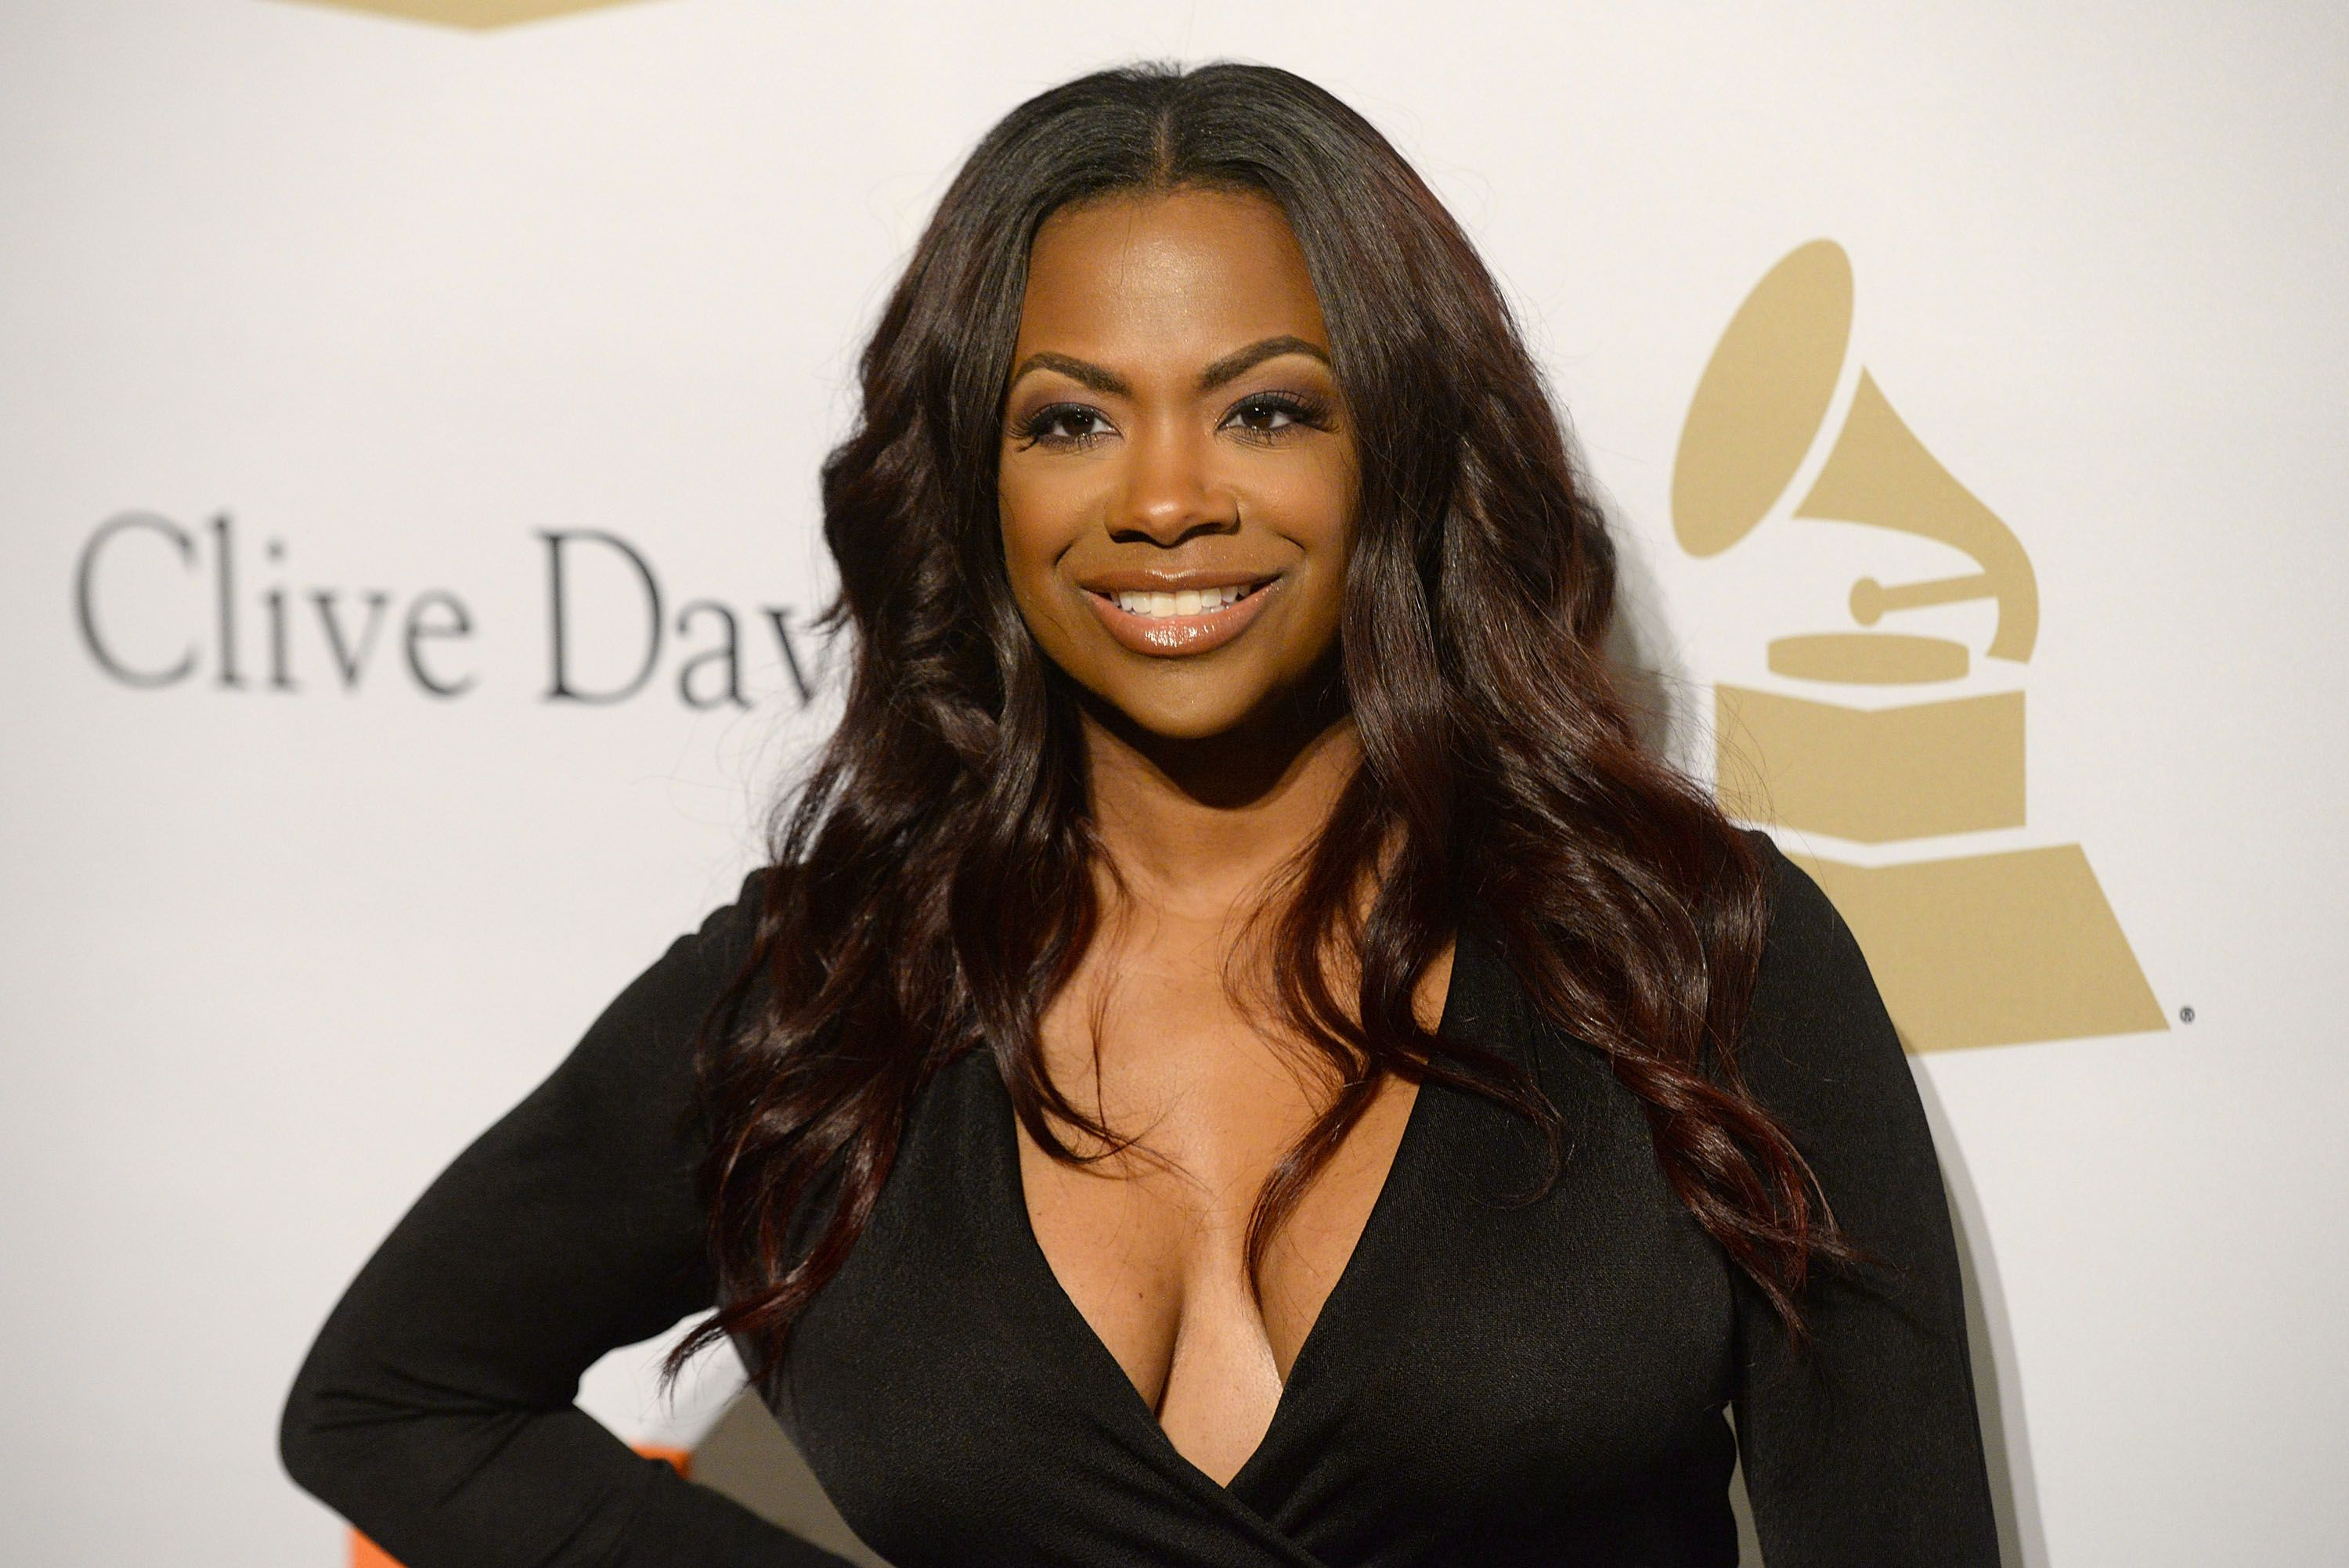 Kandi Burruss during the 2017 Pre-Grammy Gala and Salute to Industry Icons Honoring Debra Lee at The Beverly Hilton Hotel on February 11, 2017 in Beverly Hills, California. | Source: Getty Images